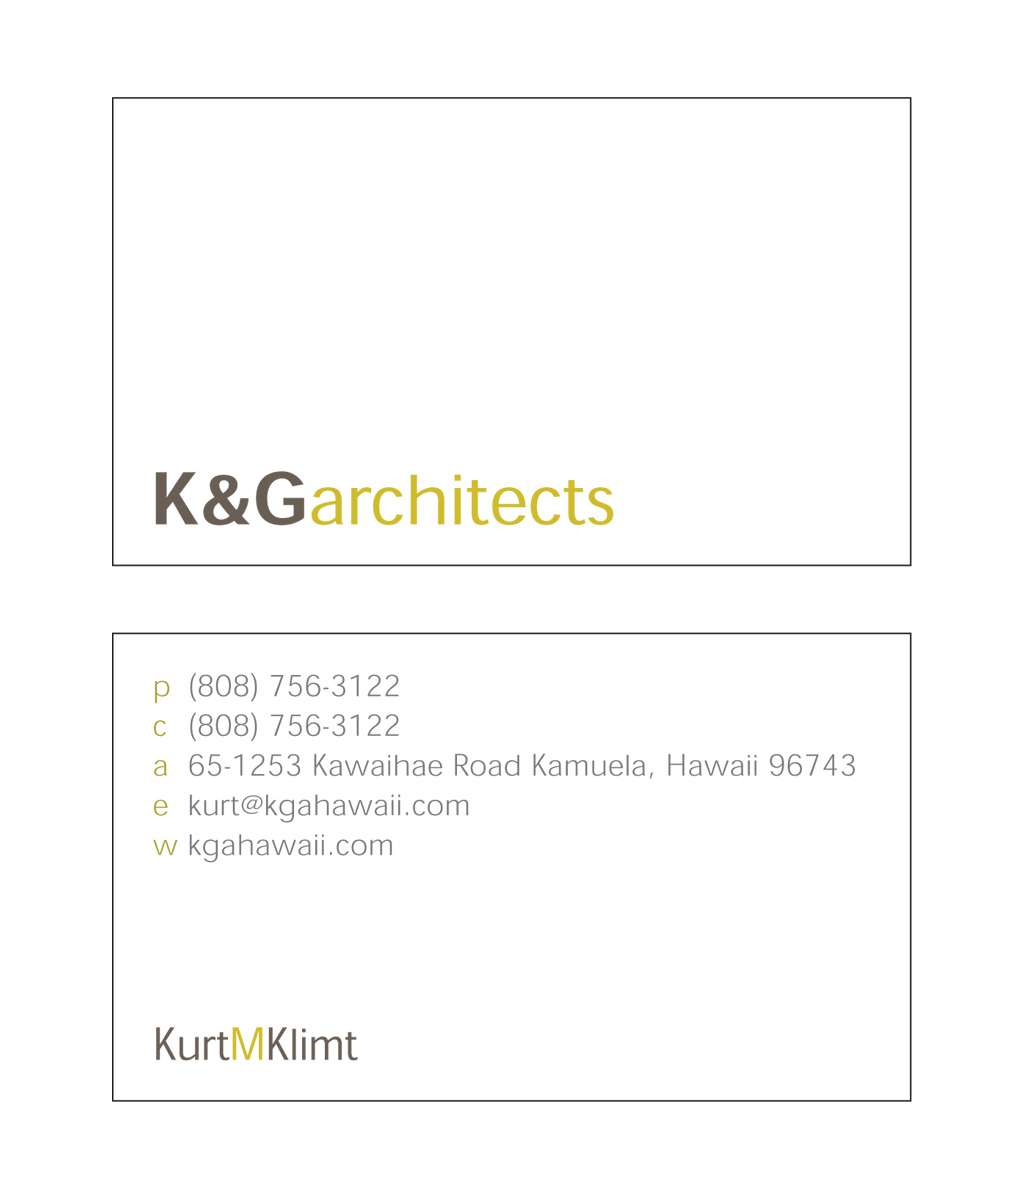 Elegant playful business business card design for a company by business card design by tony price for this project design 124452 colourmoves